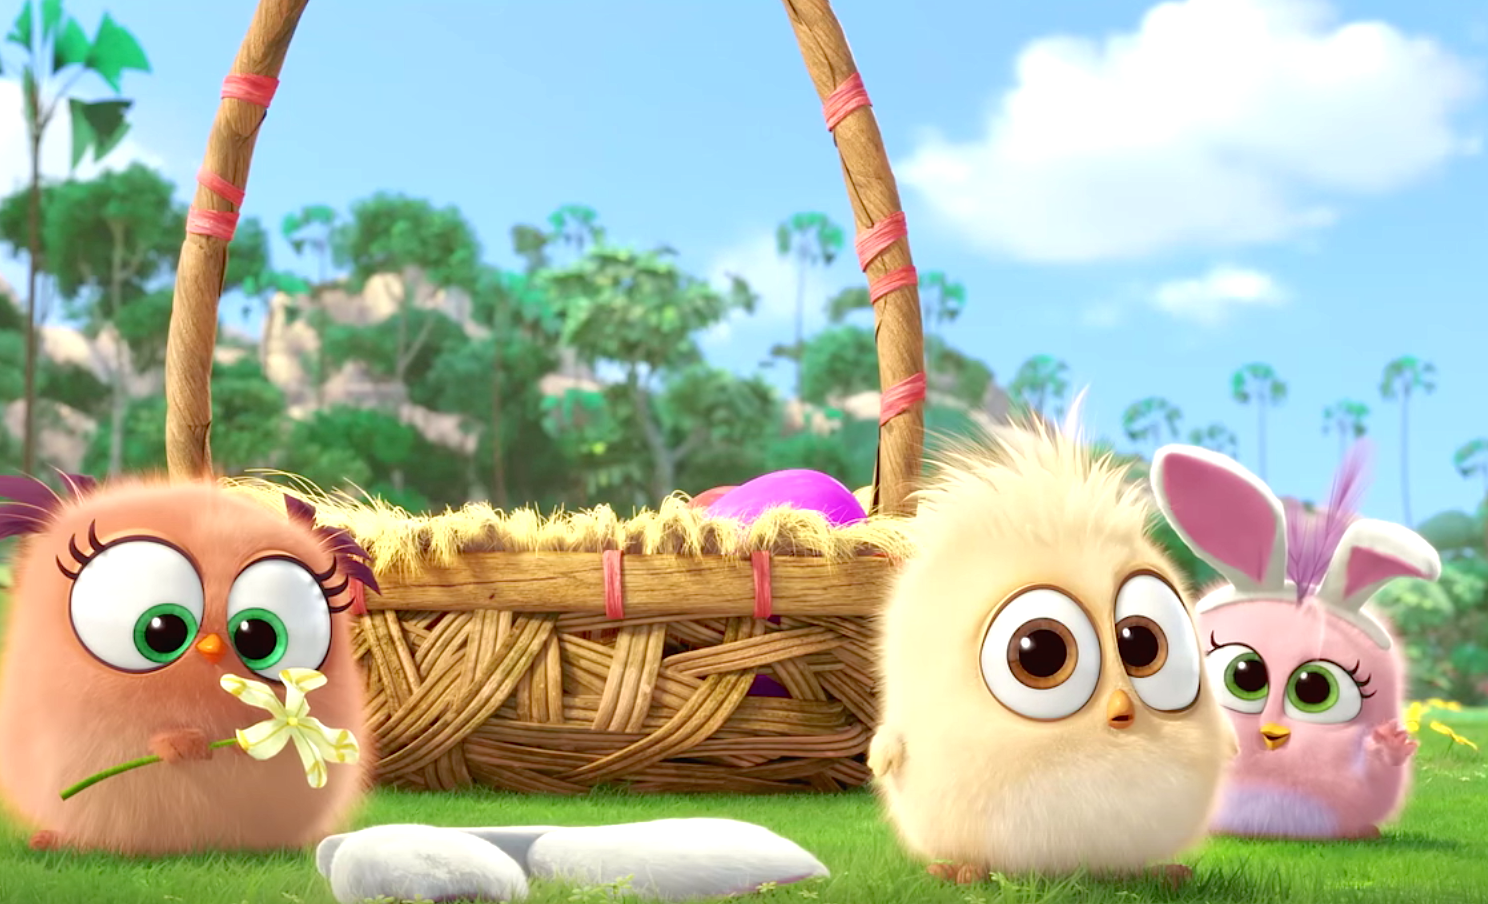 The Angry Birds Movie 2016 An Easter Message From The Hatchlings The Movie My Life